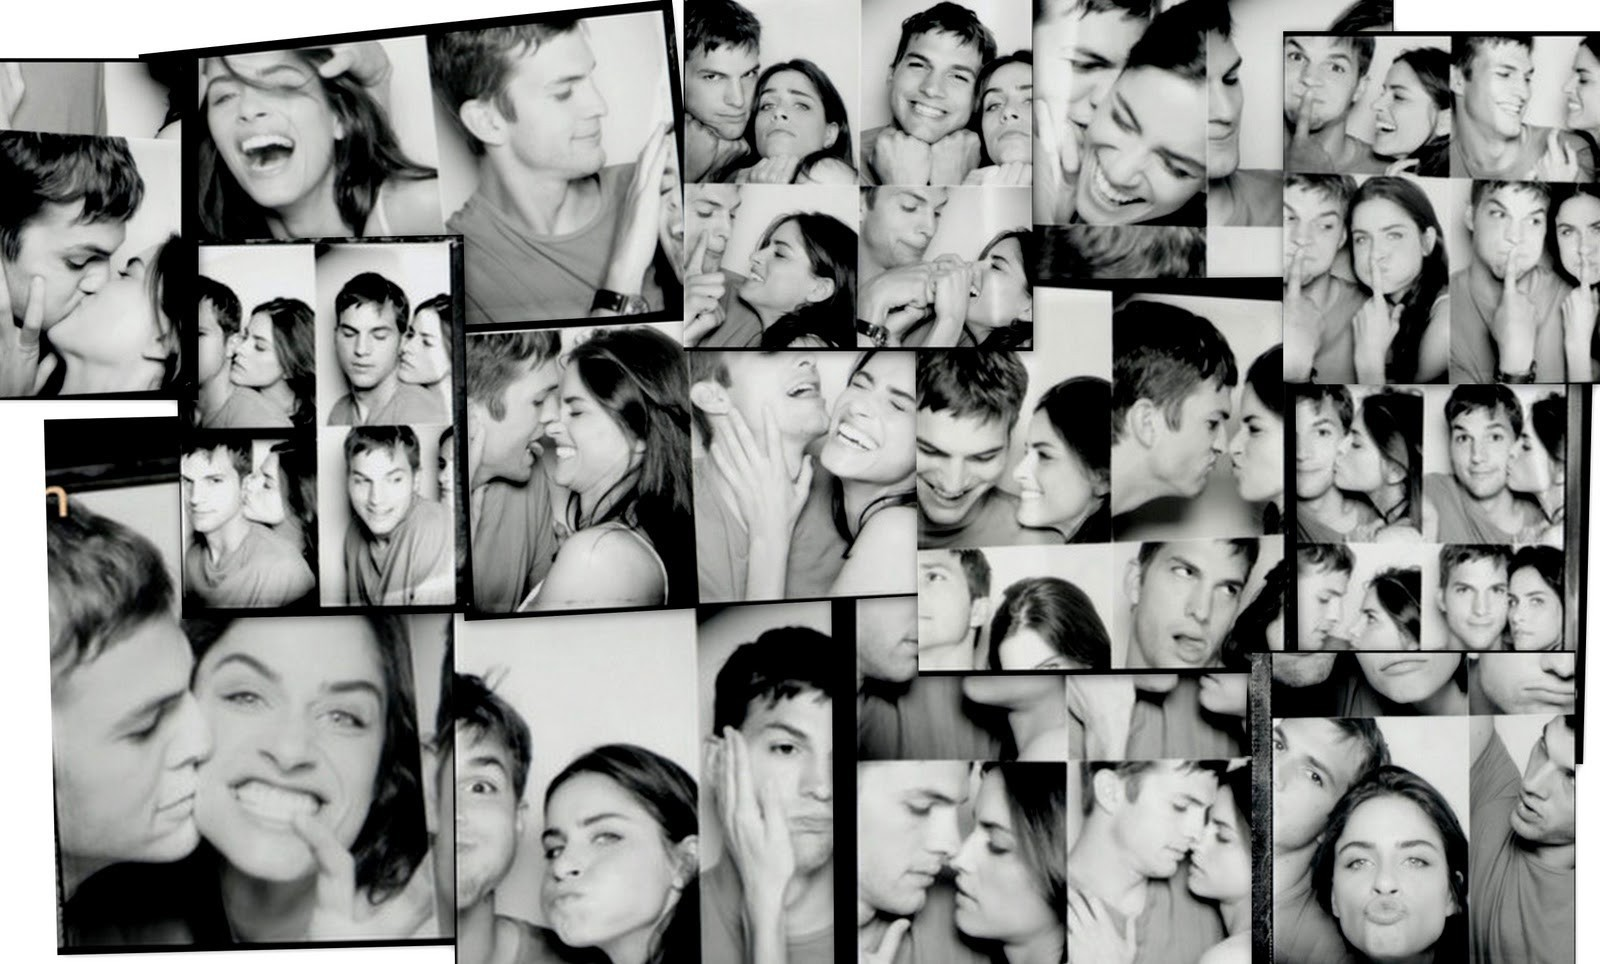 Black and White Photo Booth - Glamorous and Cheap Price | Los Angeles Photo Booth